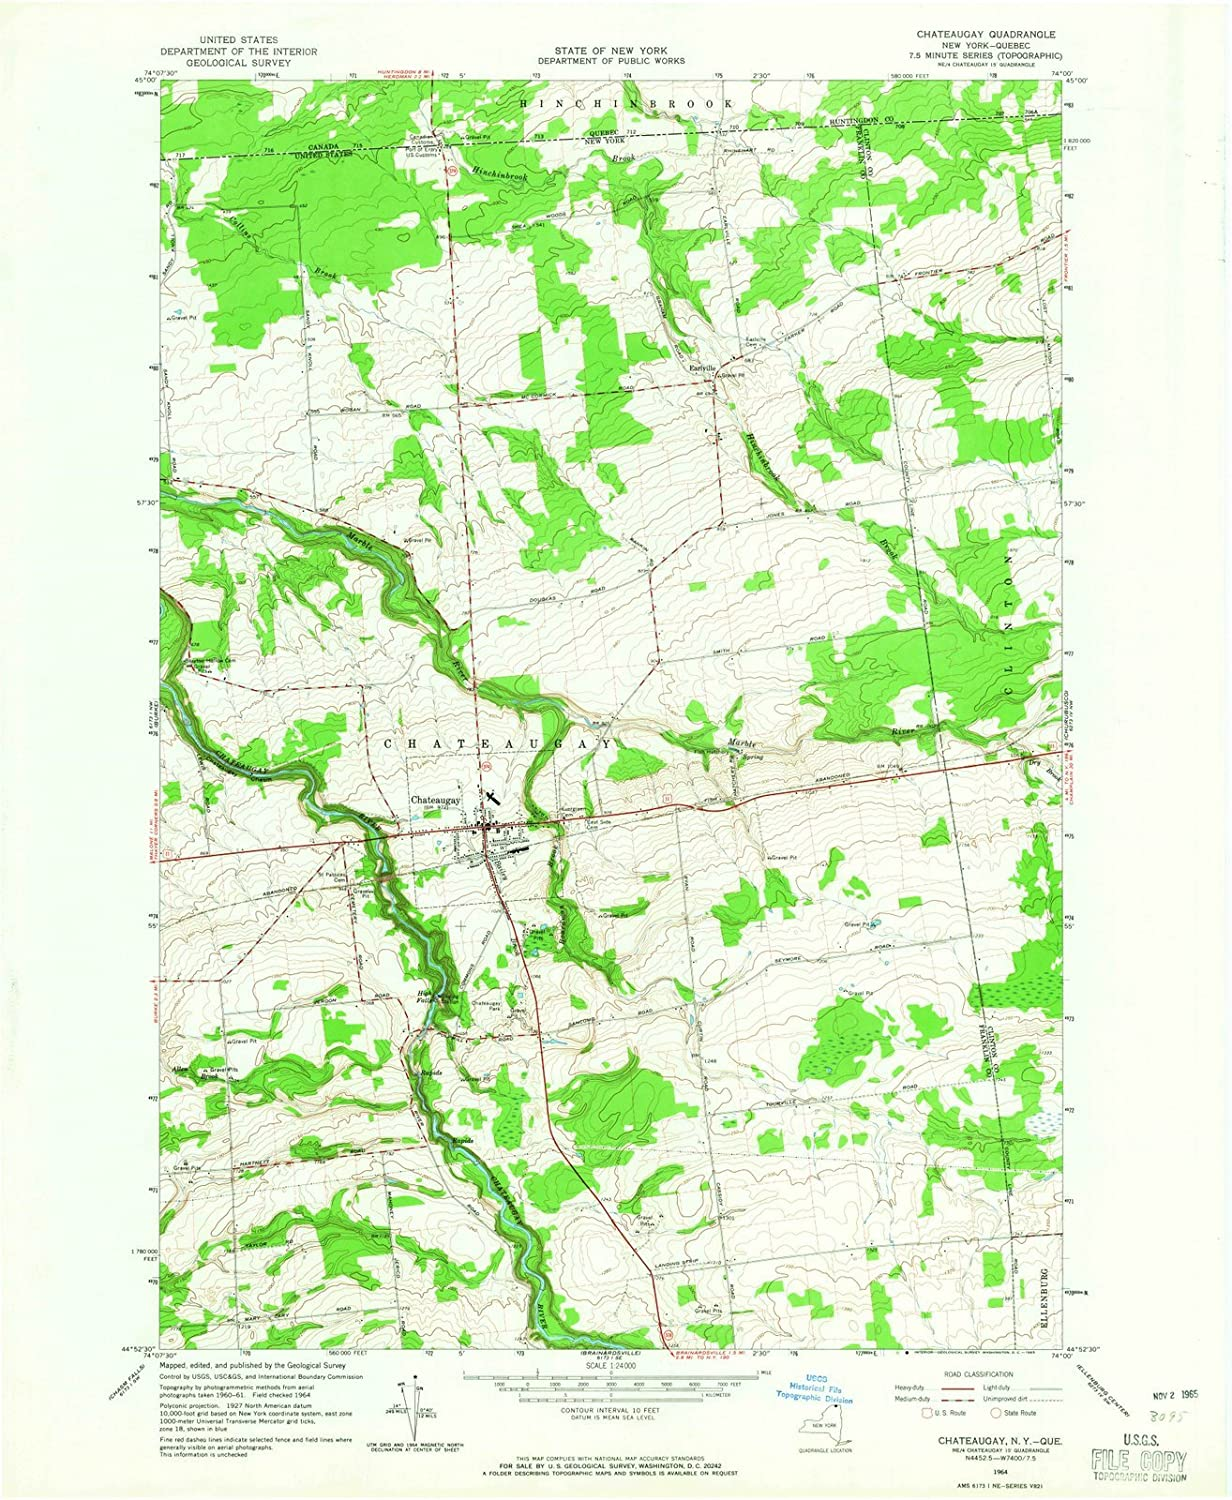 Quebec Topographic Map.Amazon Com New York Maps 1964 Chateaugay Ny Usgs Historical